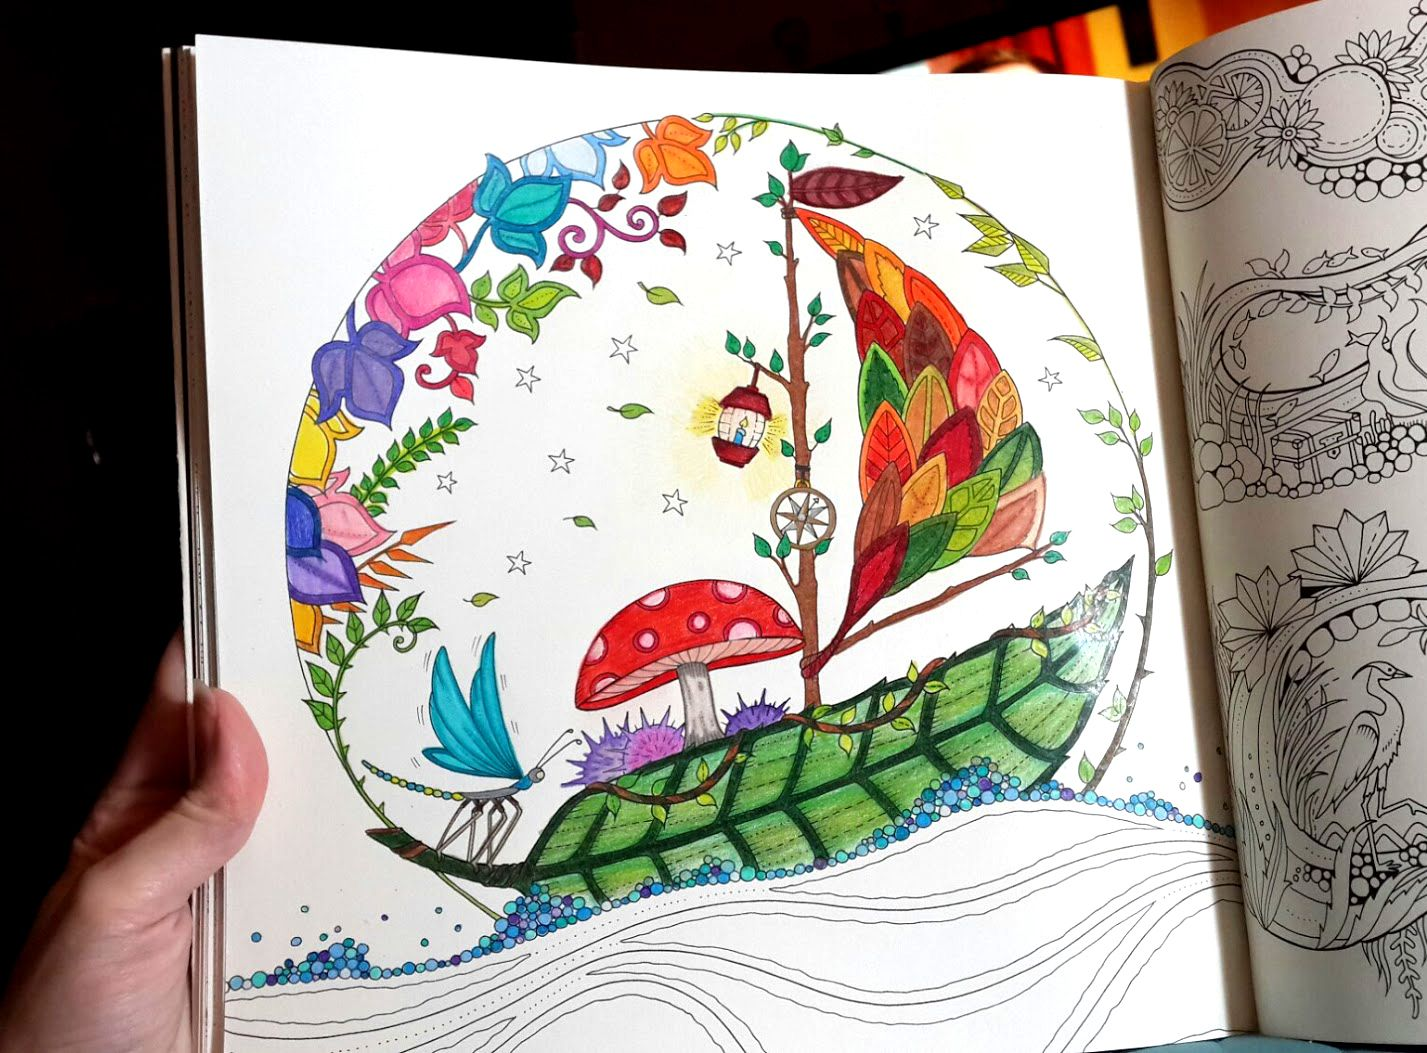 Enchanted forest coloring book website - 11 Best Adult Coloring Books Images On Pinterest Coloring Books Adult Coloring And The Enchanted Forest